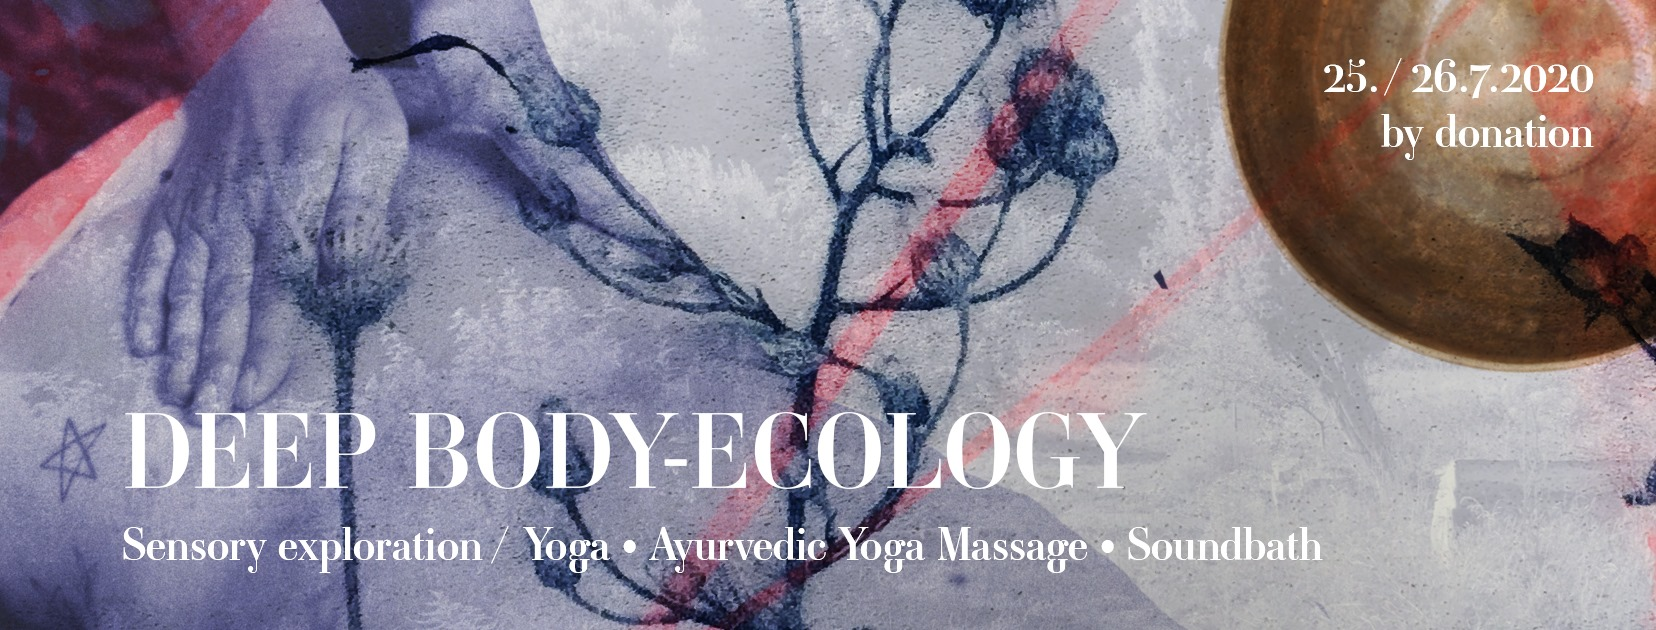 DEEP BODY-ECOLOGY